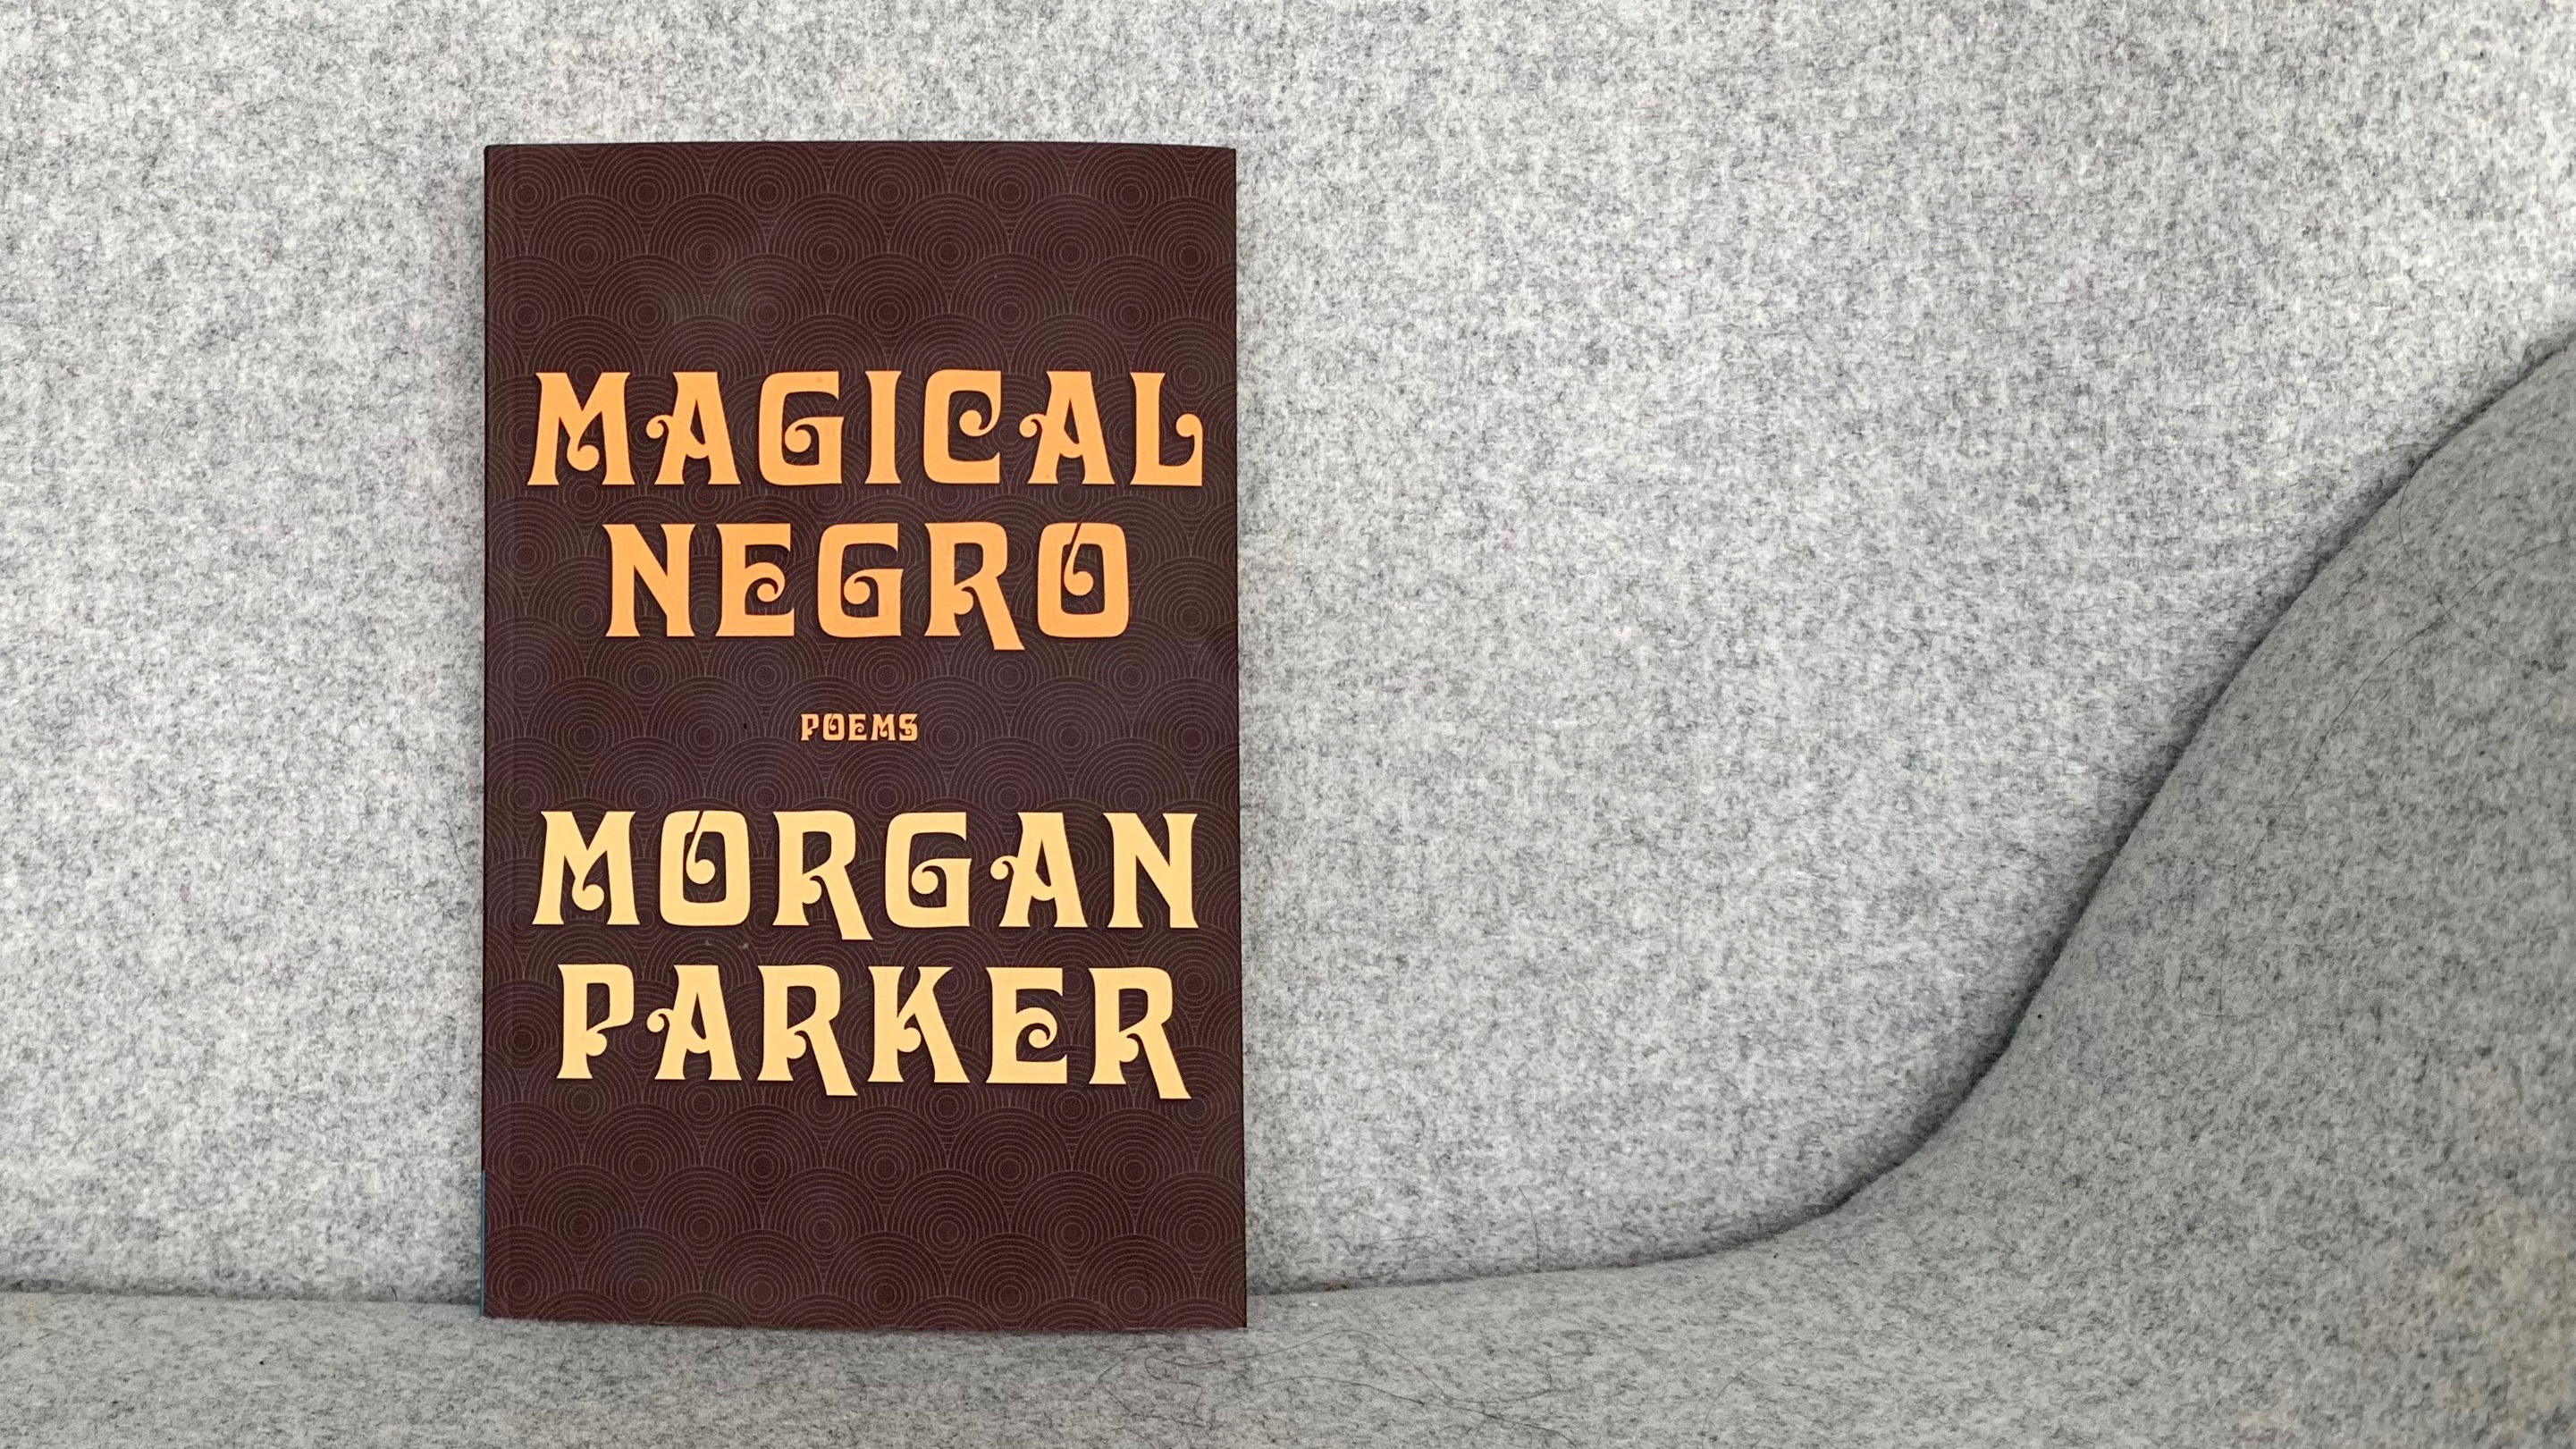 Image for 'Magical Negro' Carries The Weight Of History Article